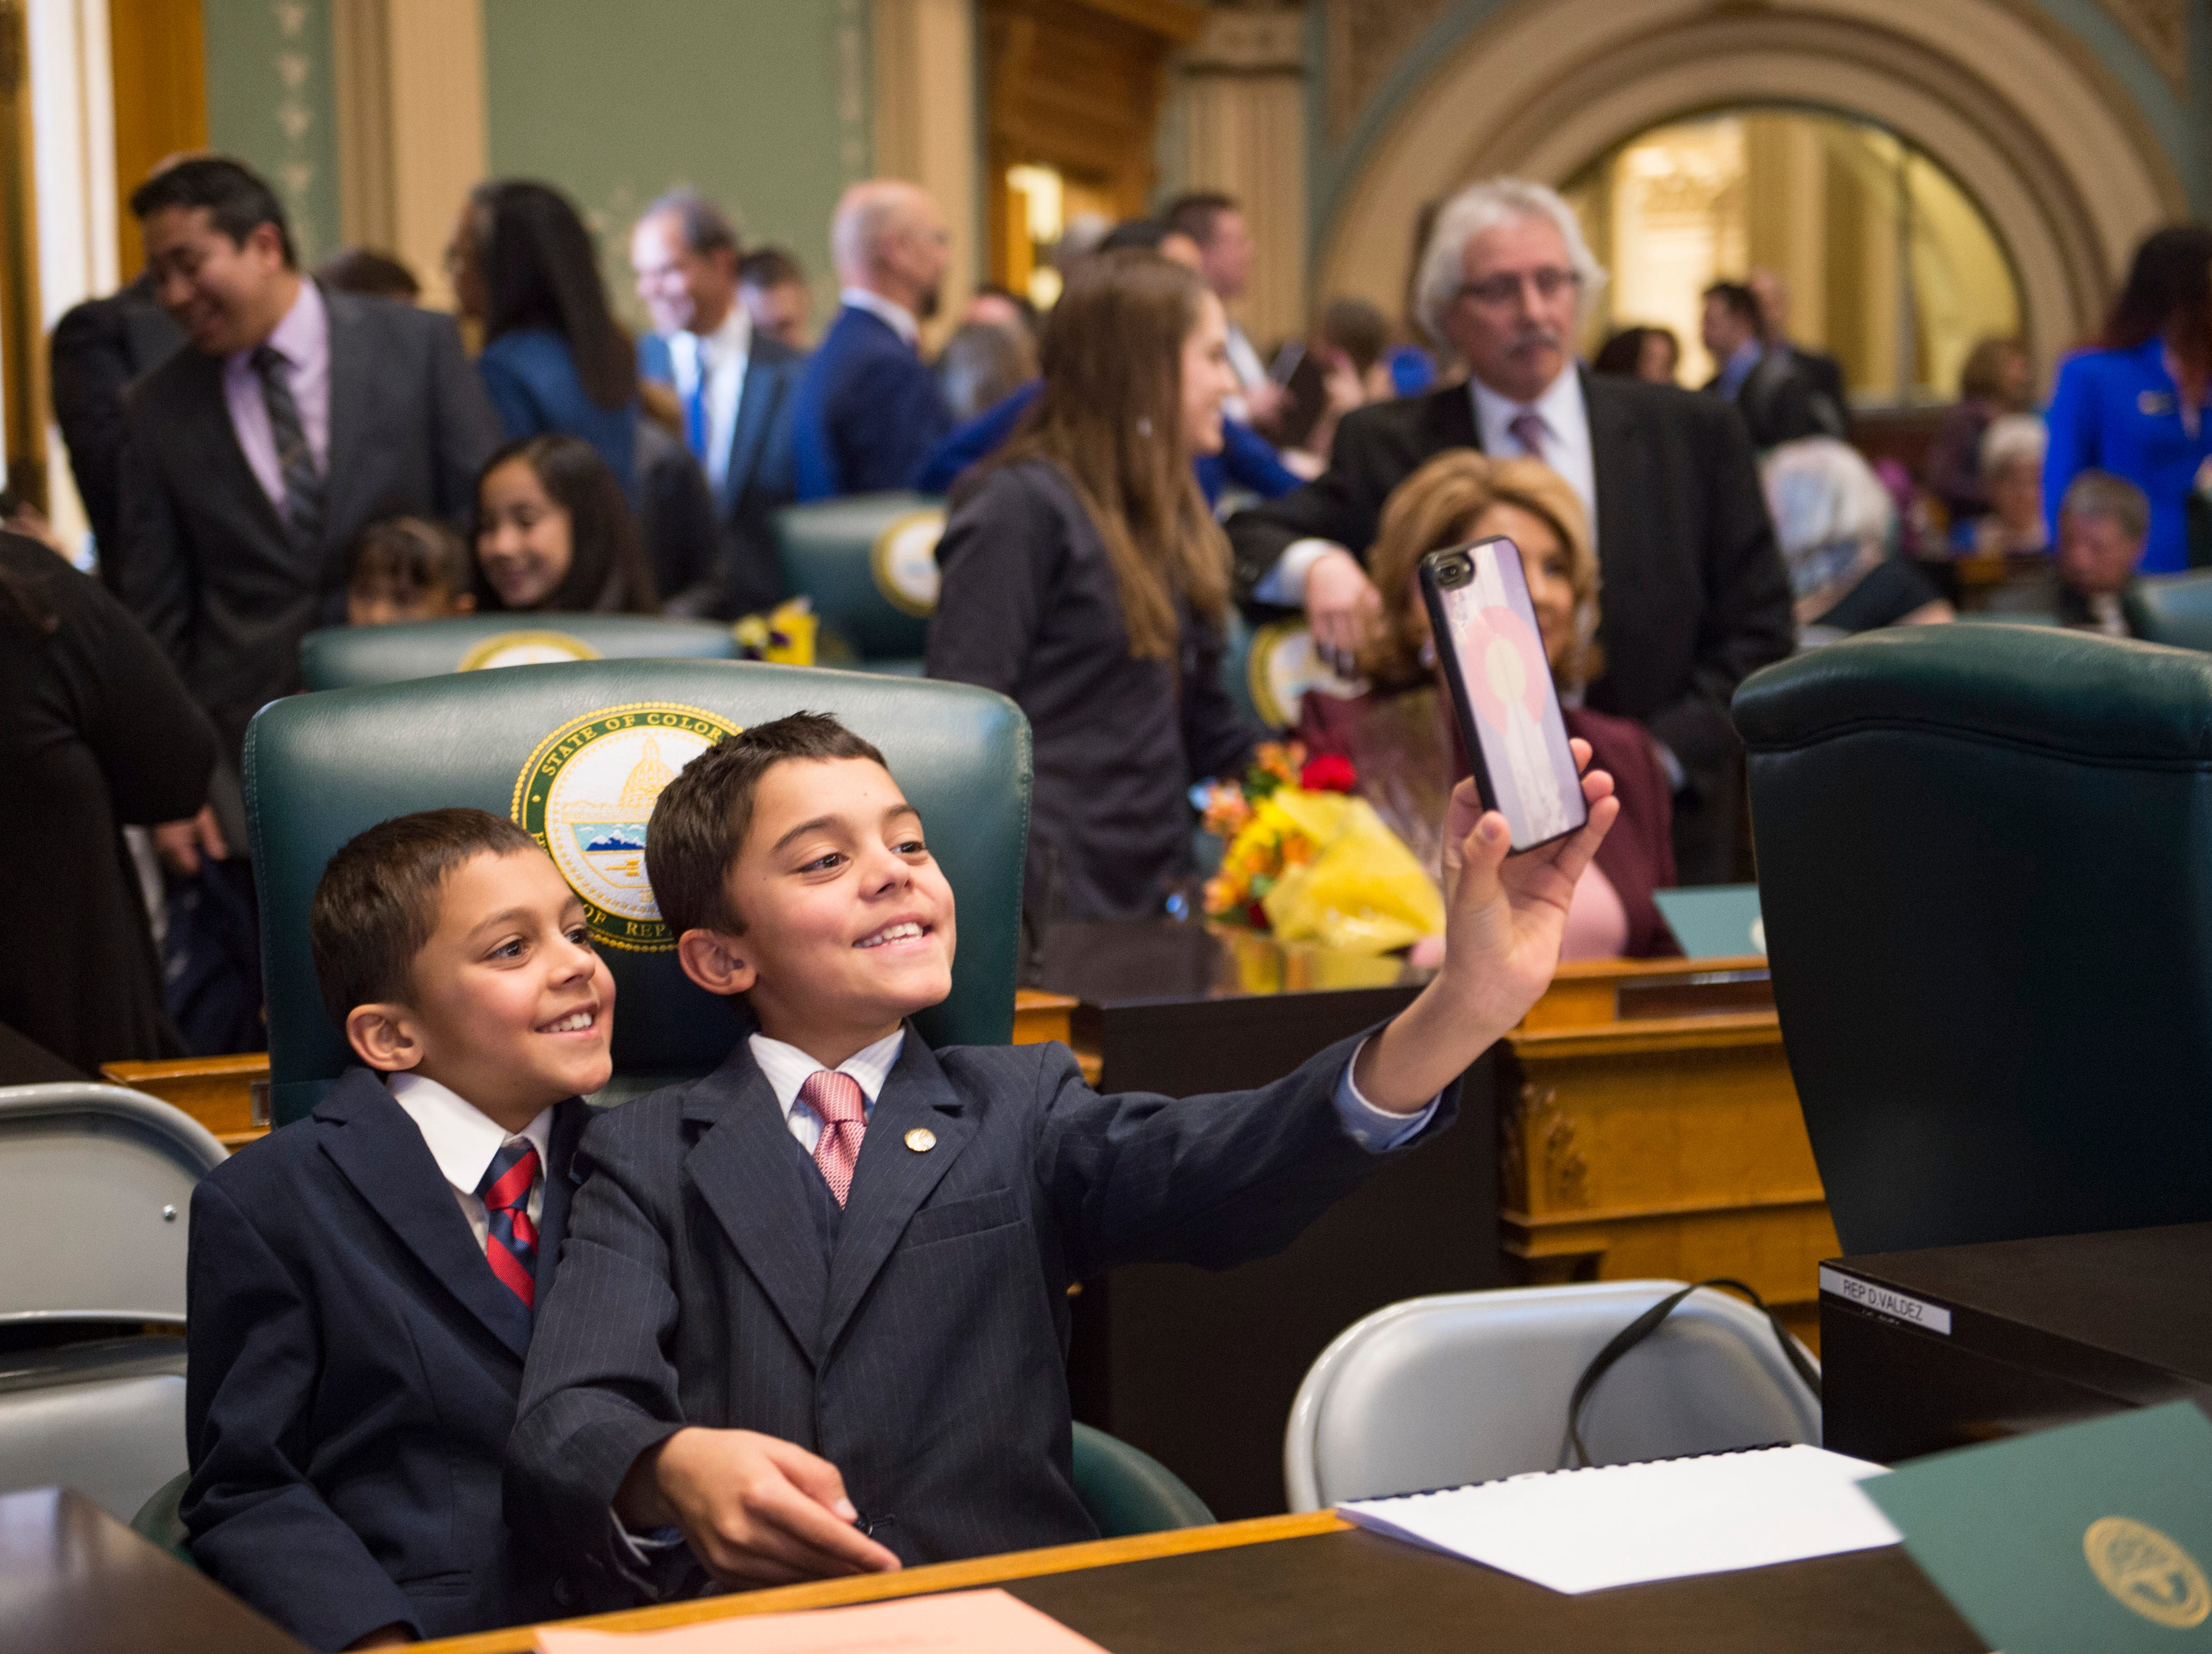 Ashwin Hansen, 10, and his brother Sachin, 12, take a photo at their father, Representative Chris Hansen's, desk as the 72nd General Assembly convenes at the Colorado State Capitol on Friday, January 4, 2019.